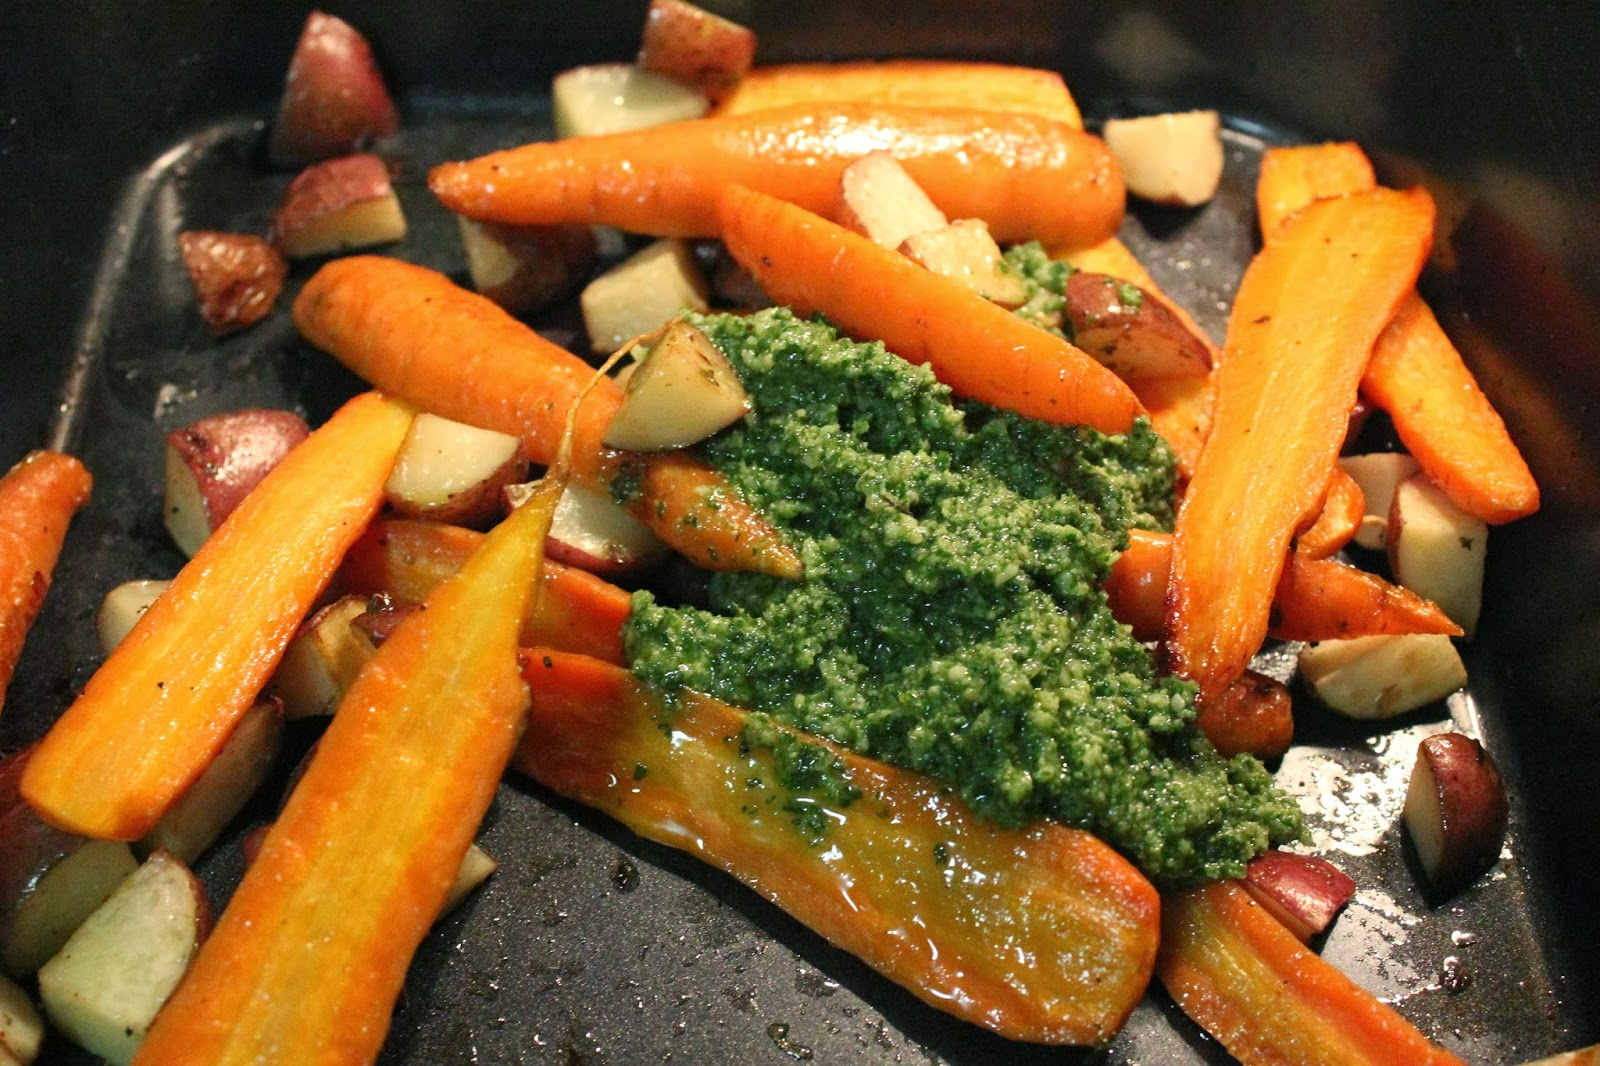 Runaway Apricot's Roasted Carrots and Potatoes with Carrot Top Pesto